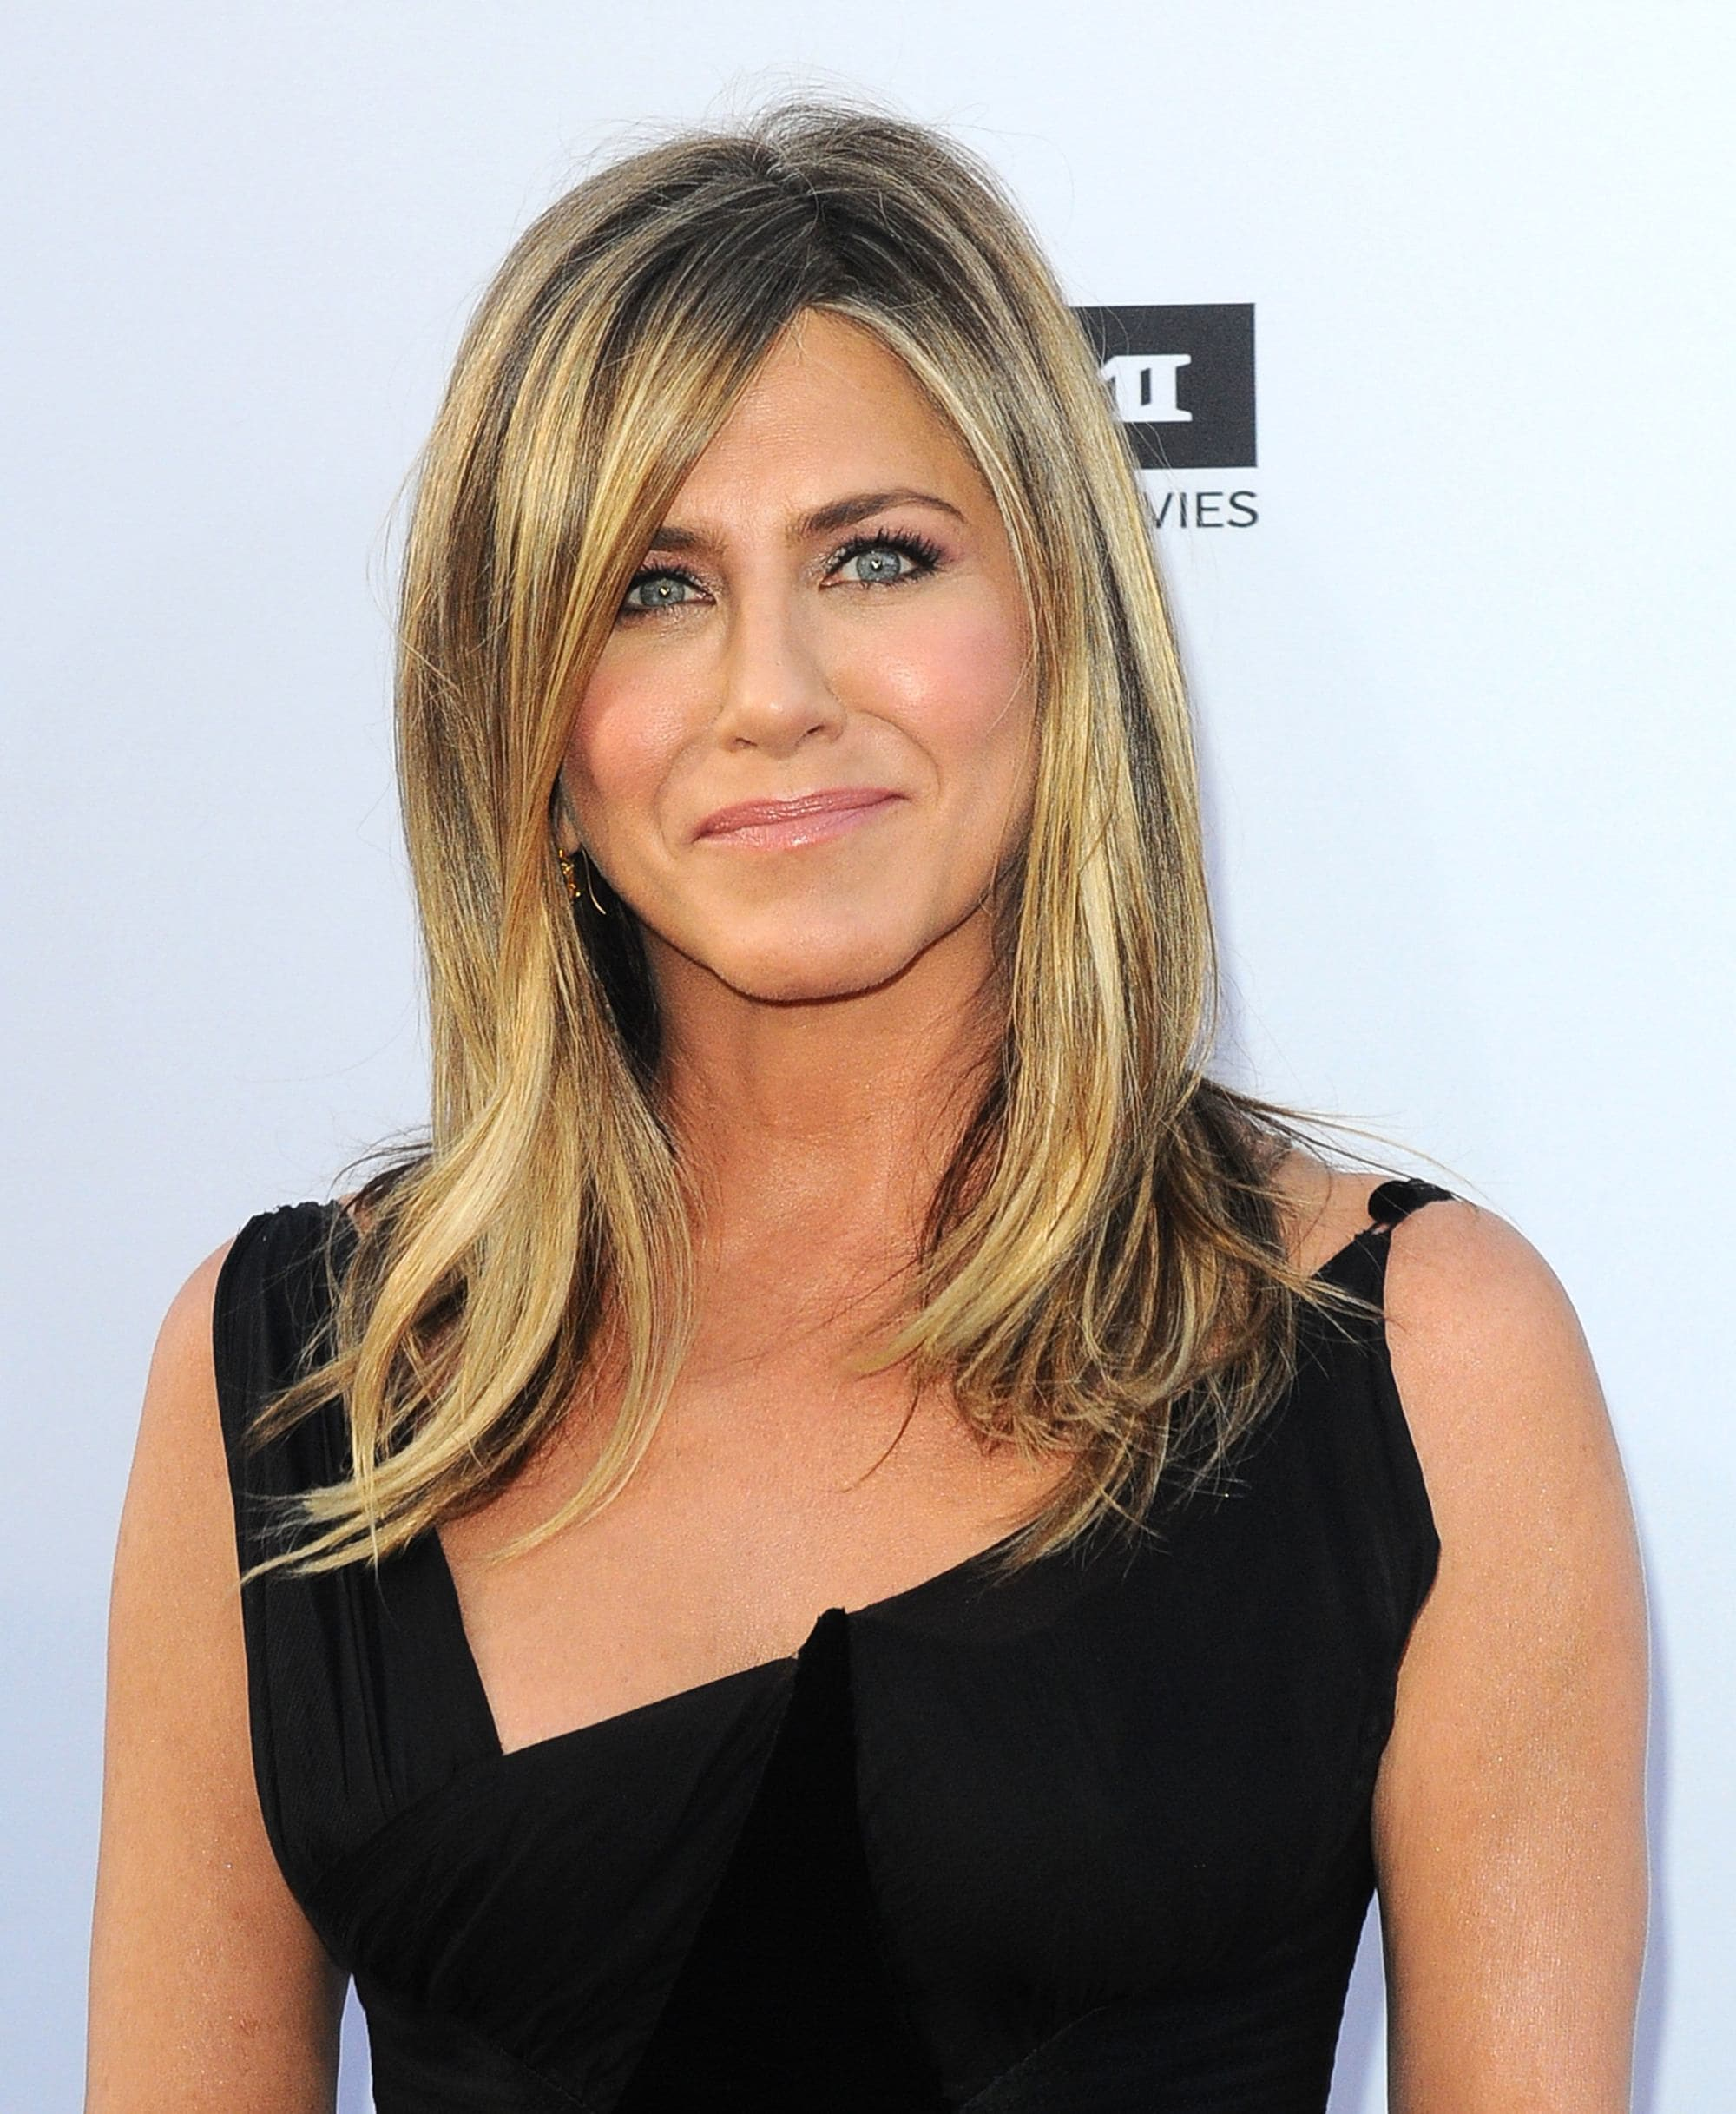 Highlights and lowlights: Jennifer Aniston with medium length highlighted blonde hair with long side fringe.